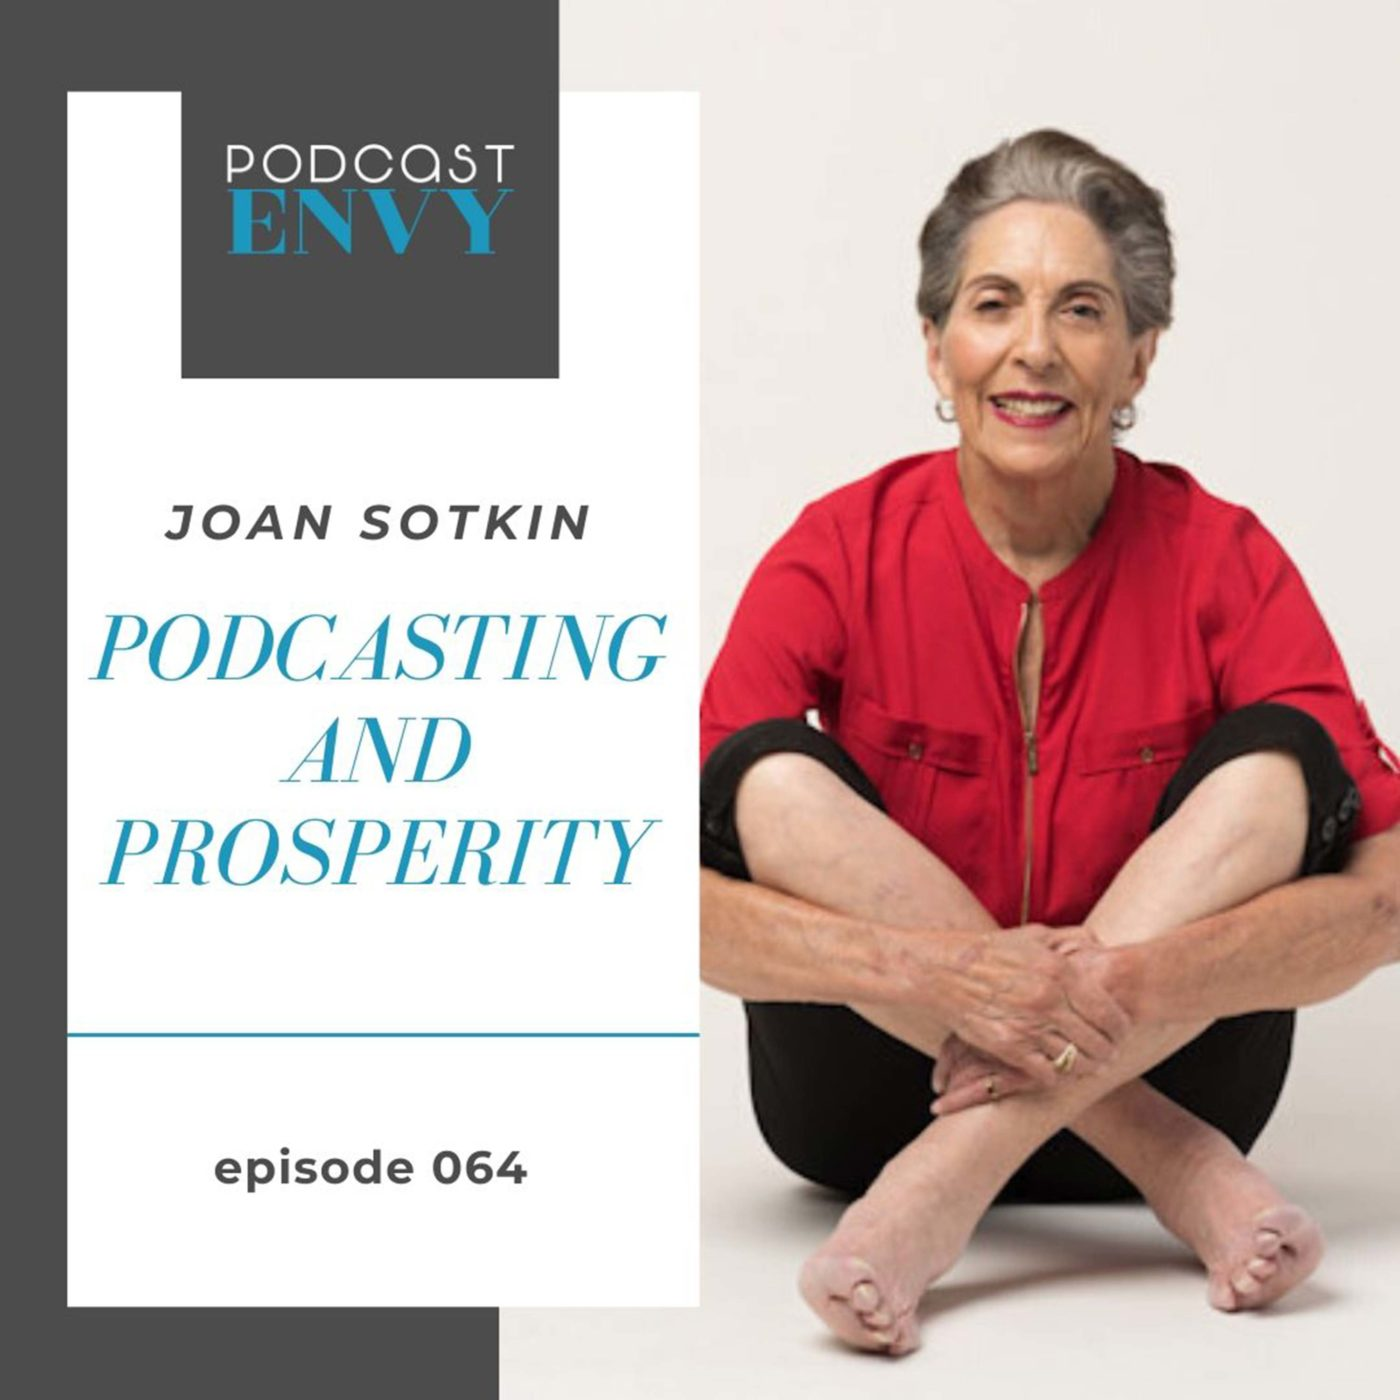 PE064: Podcasting and Prosperity with Joan Sotkin